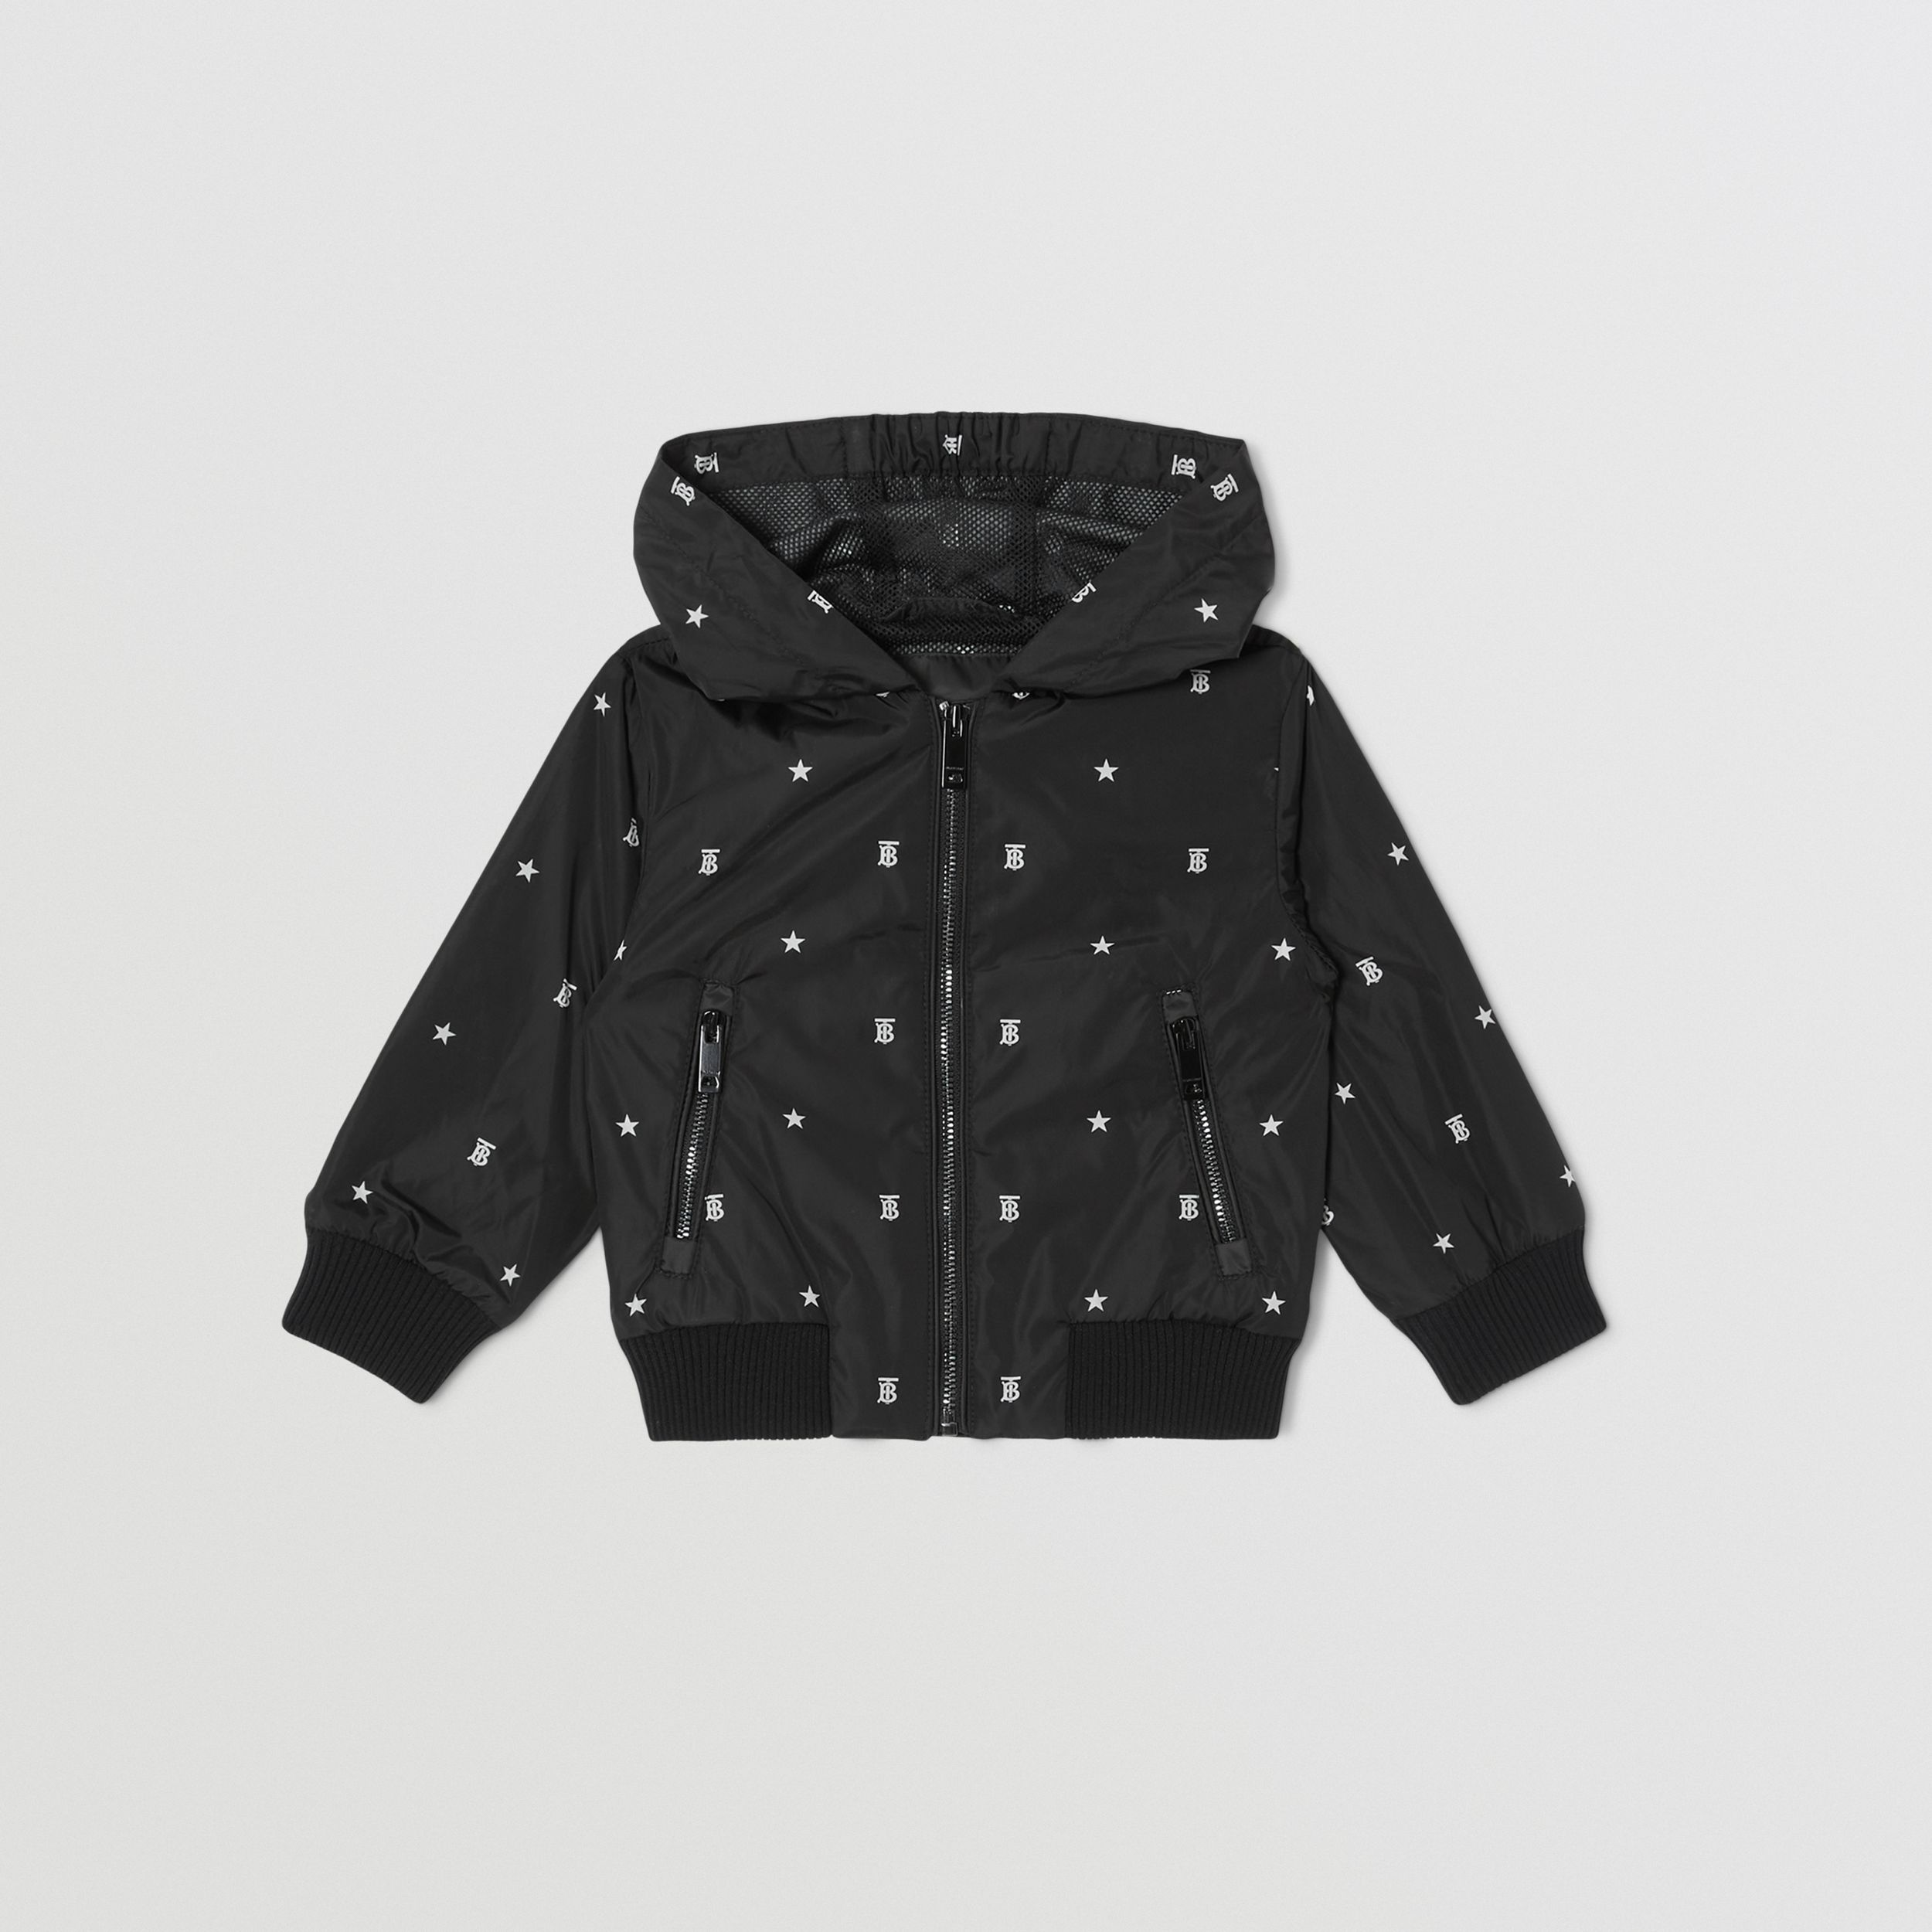 Star and Monogram Motif Lightweight Hooded Jacket in Black - Children | Burberry Hong Kong S.A.R. - 1